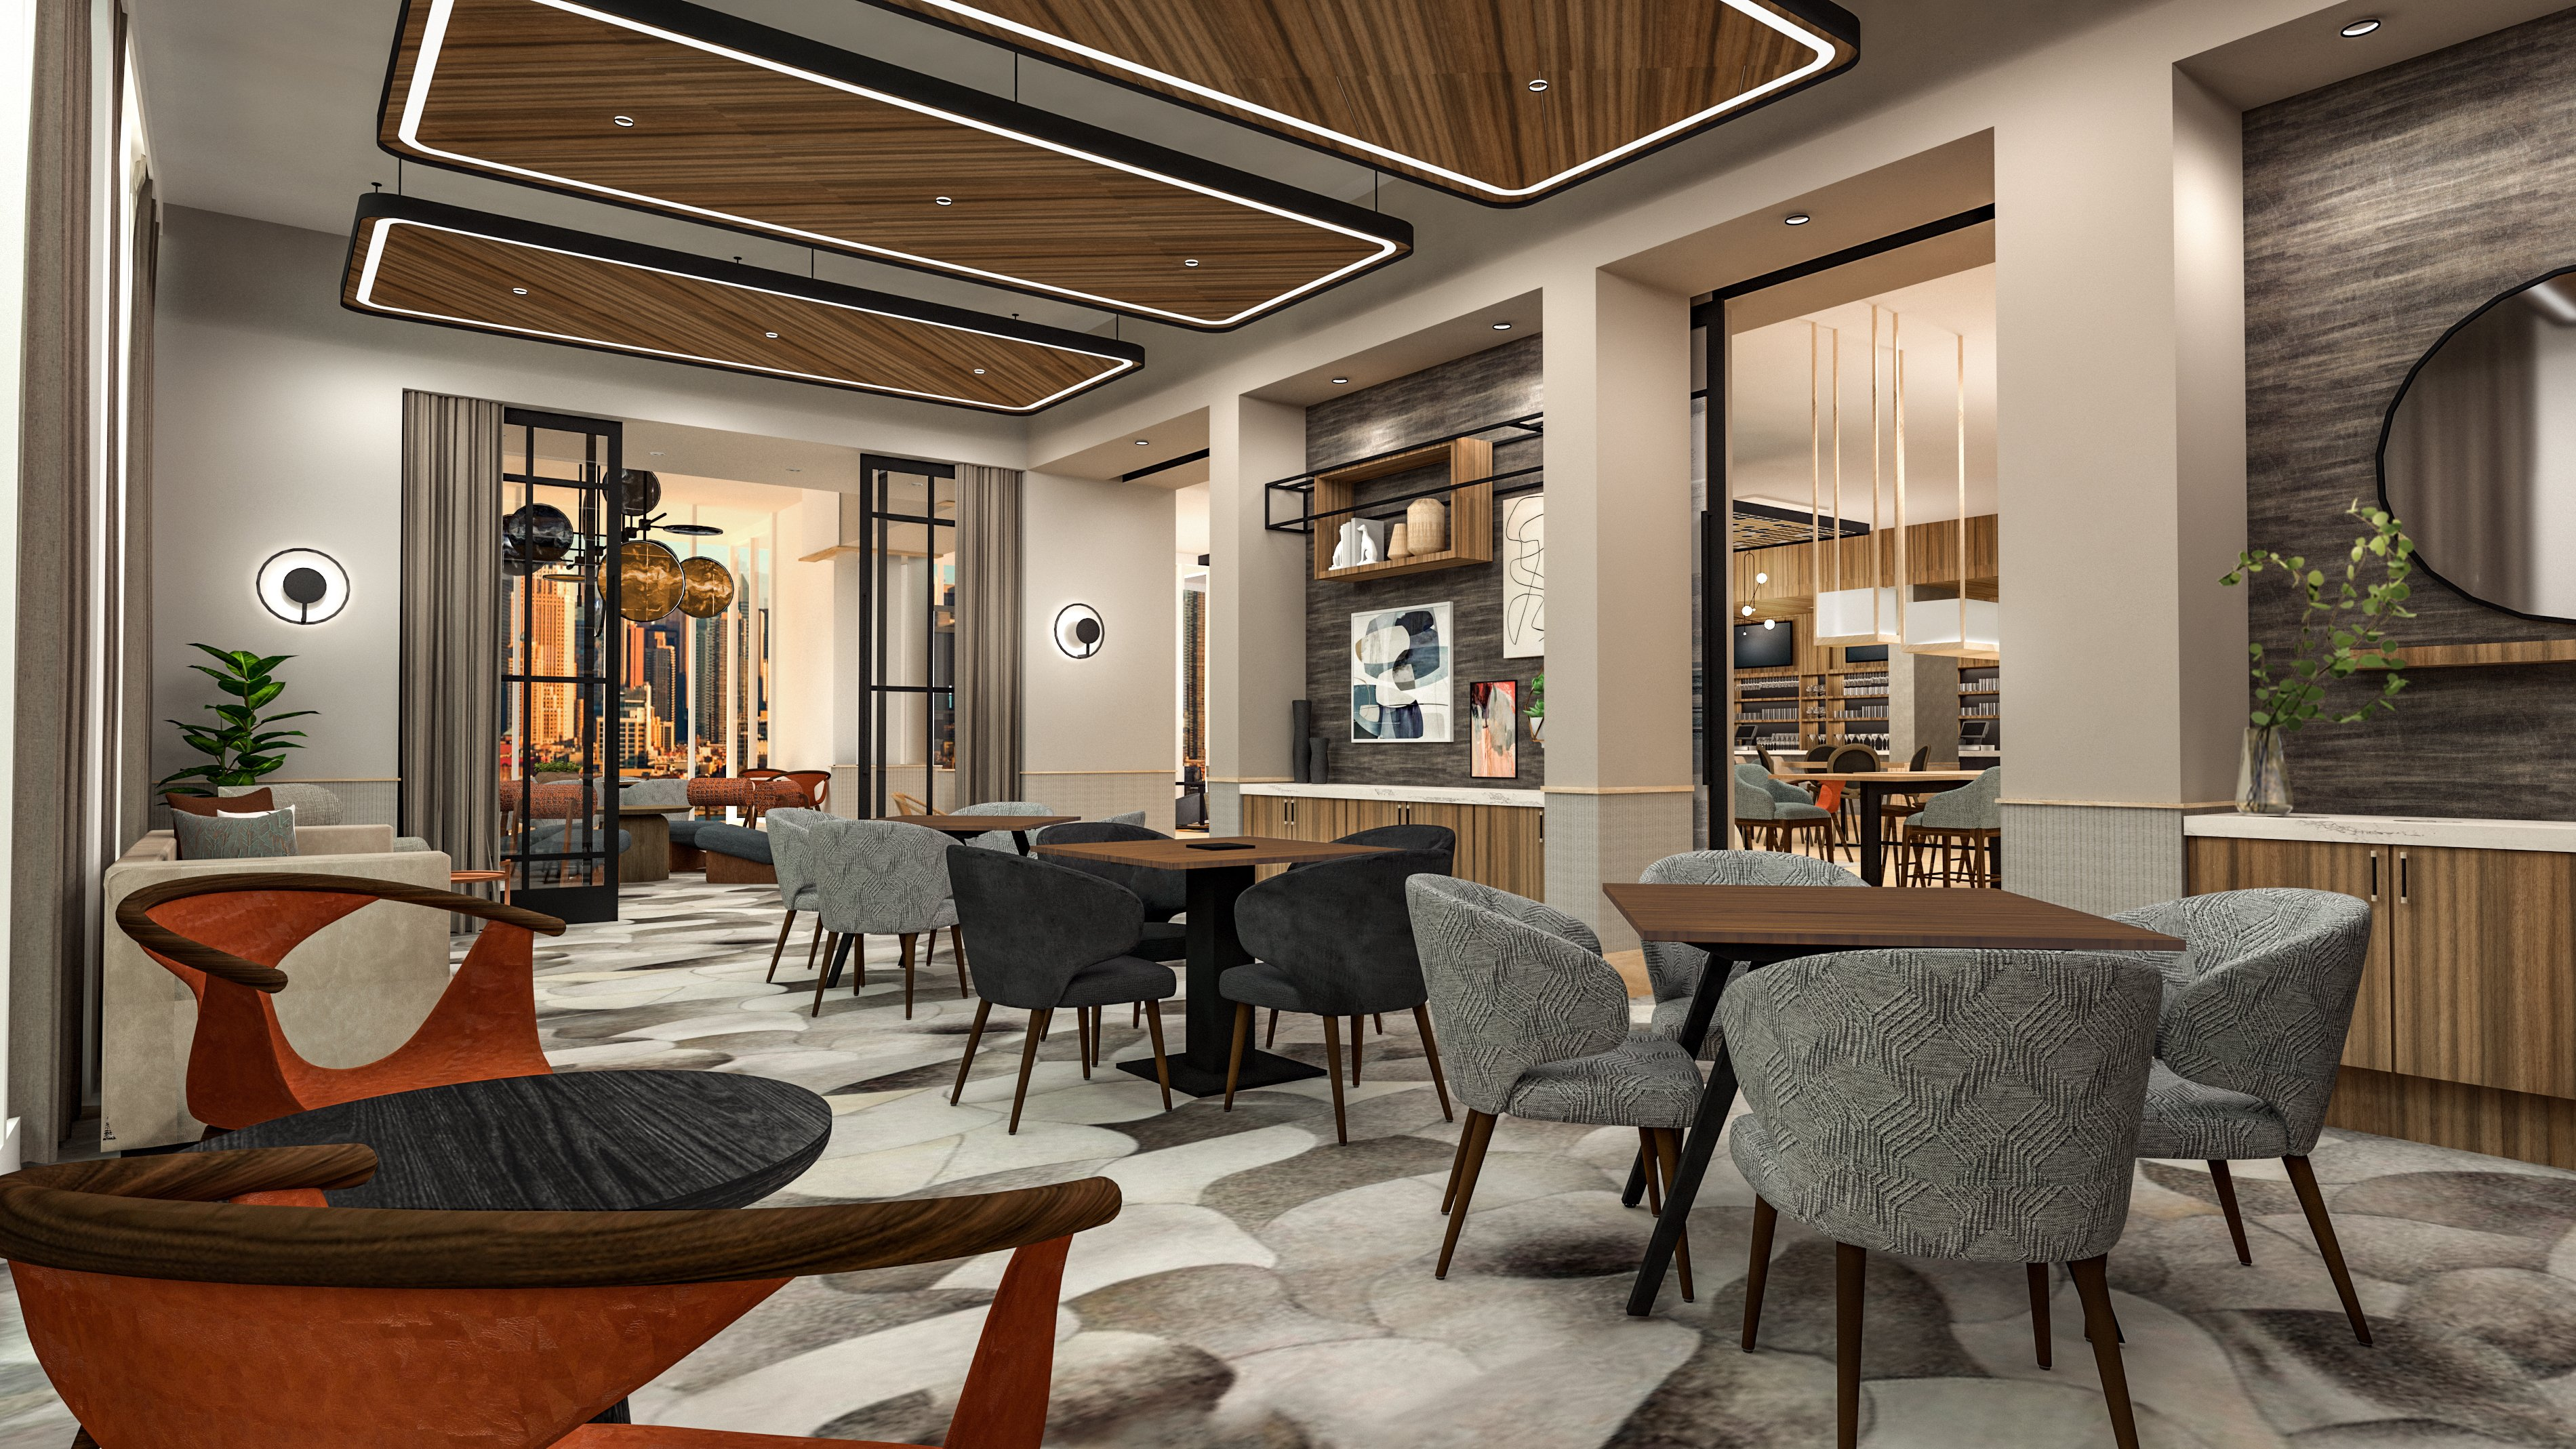 Intimate seating is found outside the meeting space in Tempo by Hilton's East Coast design.